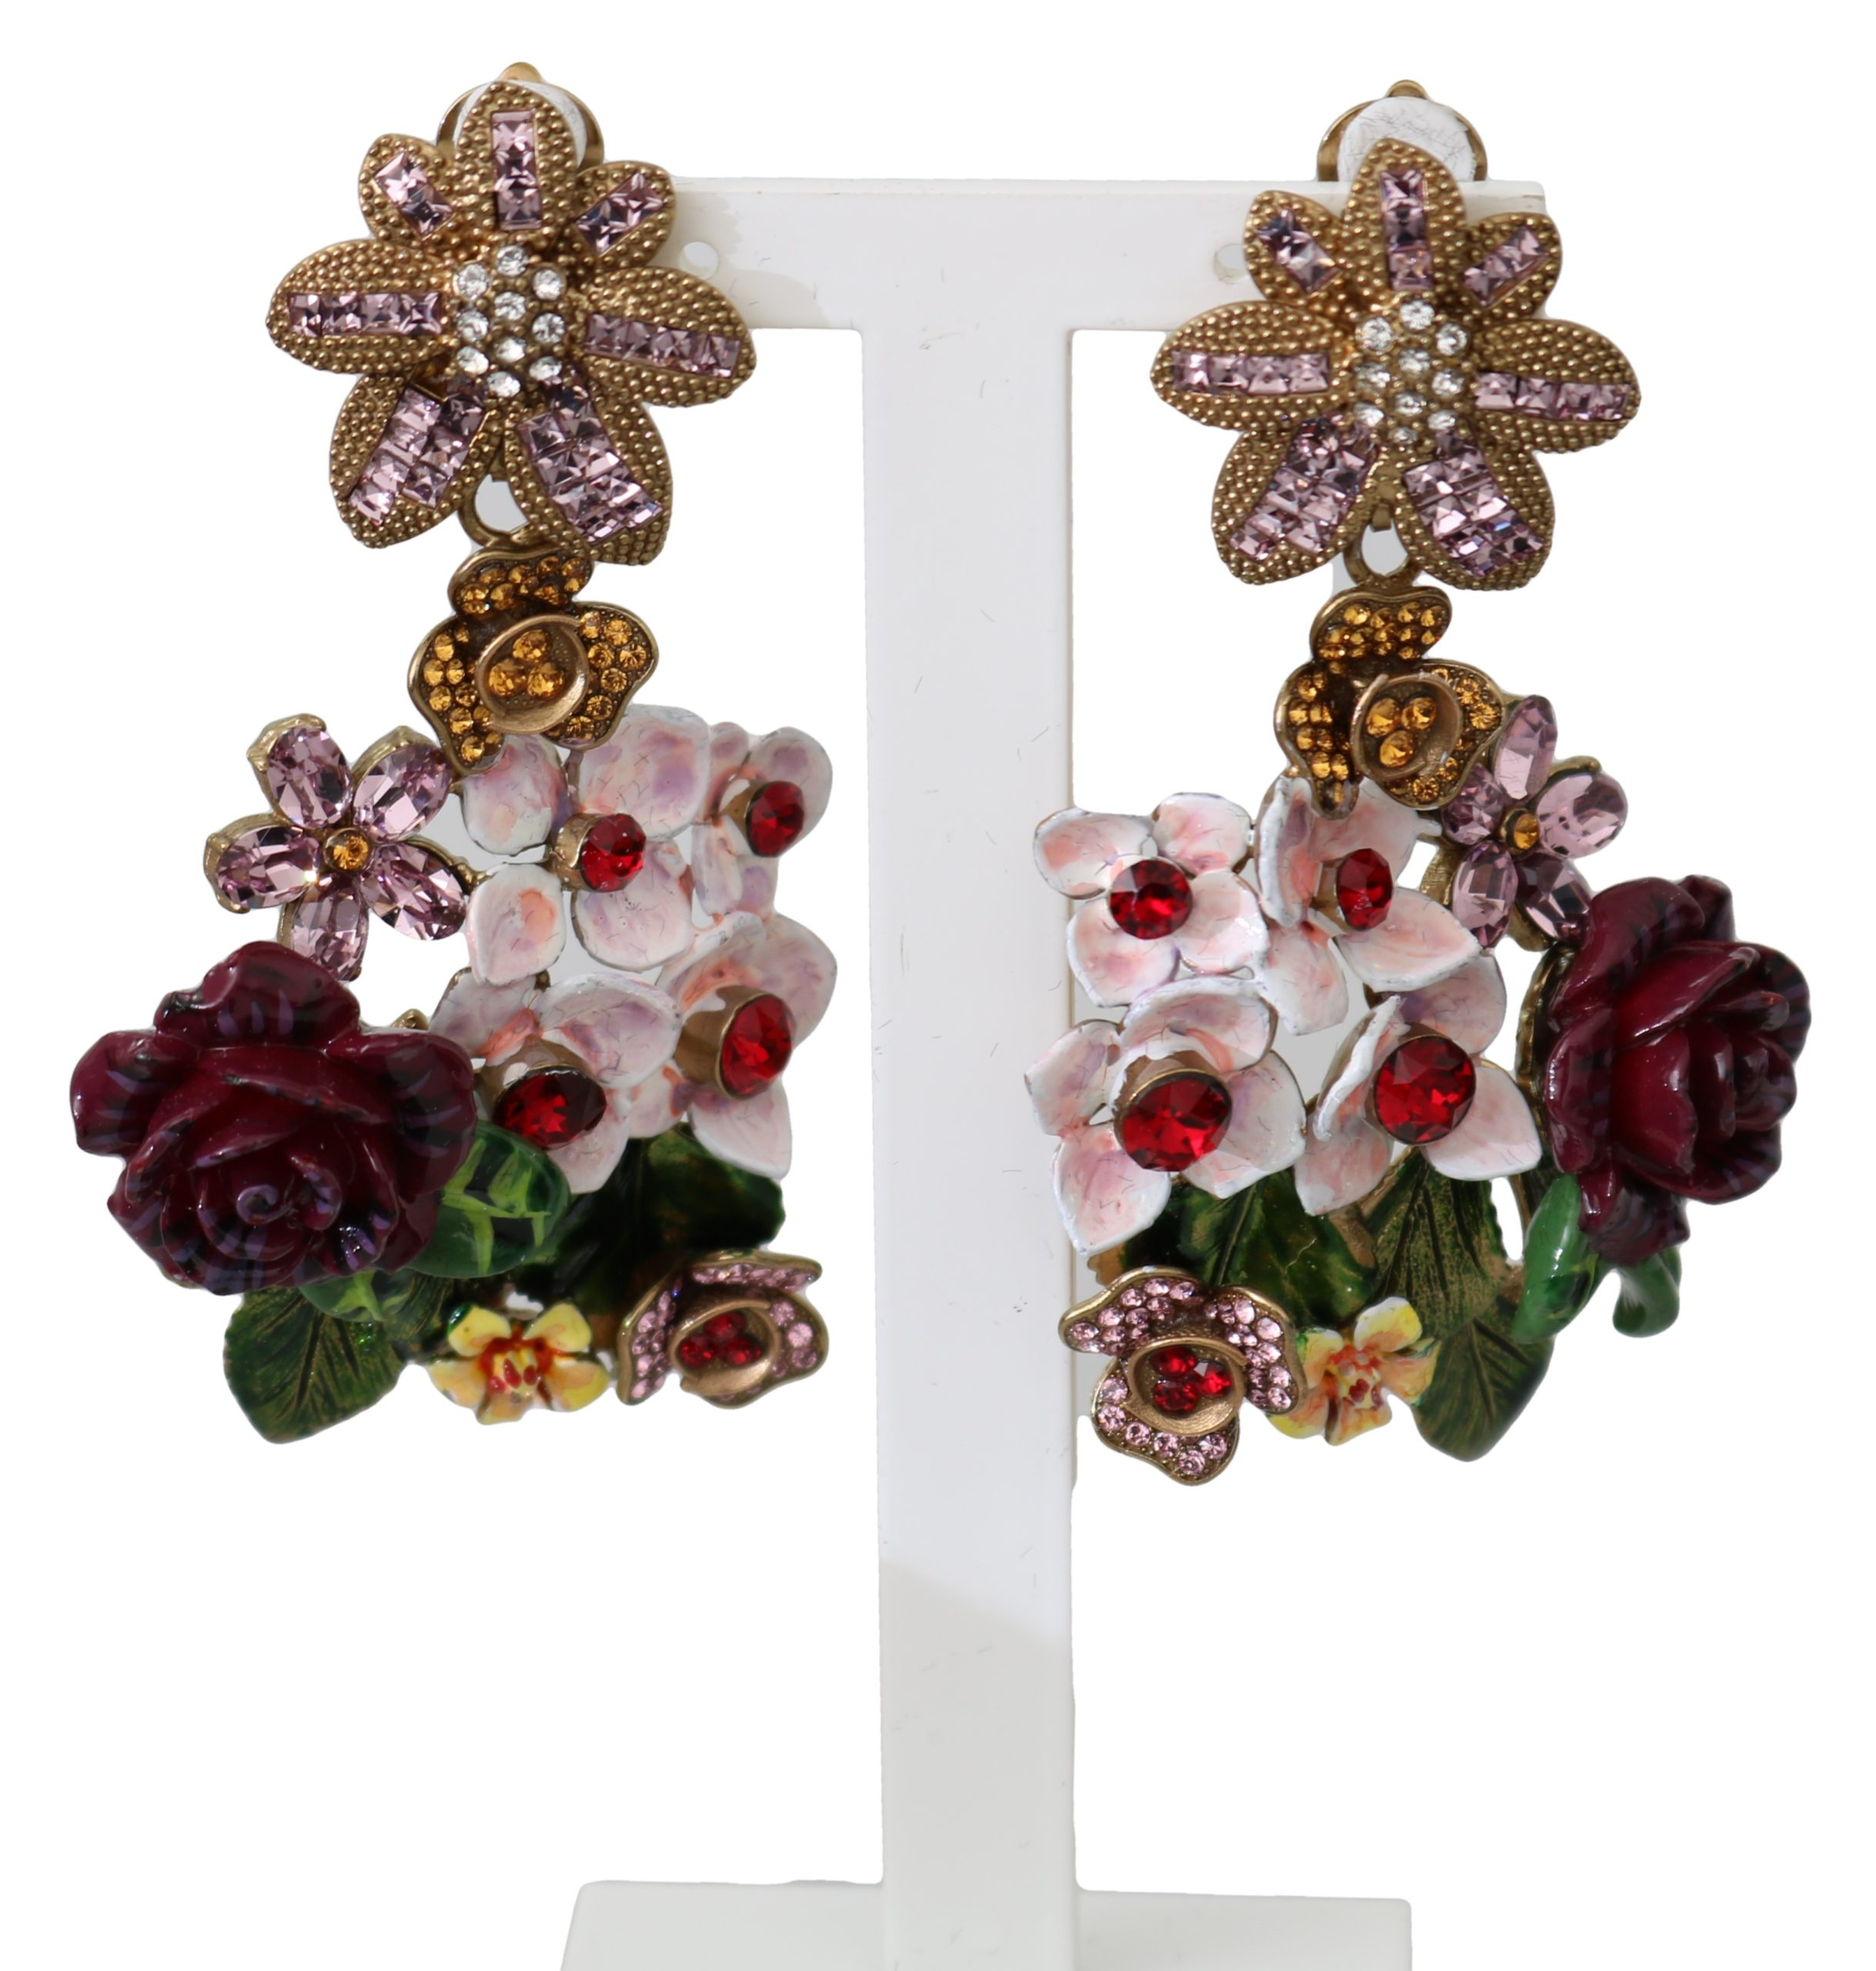 Dolce & Gabbana Women's Crystal Floral Filigree Clip-on Earrings Gold SMY100115